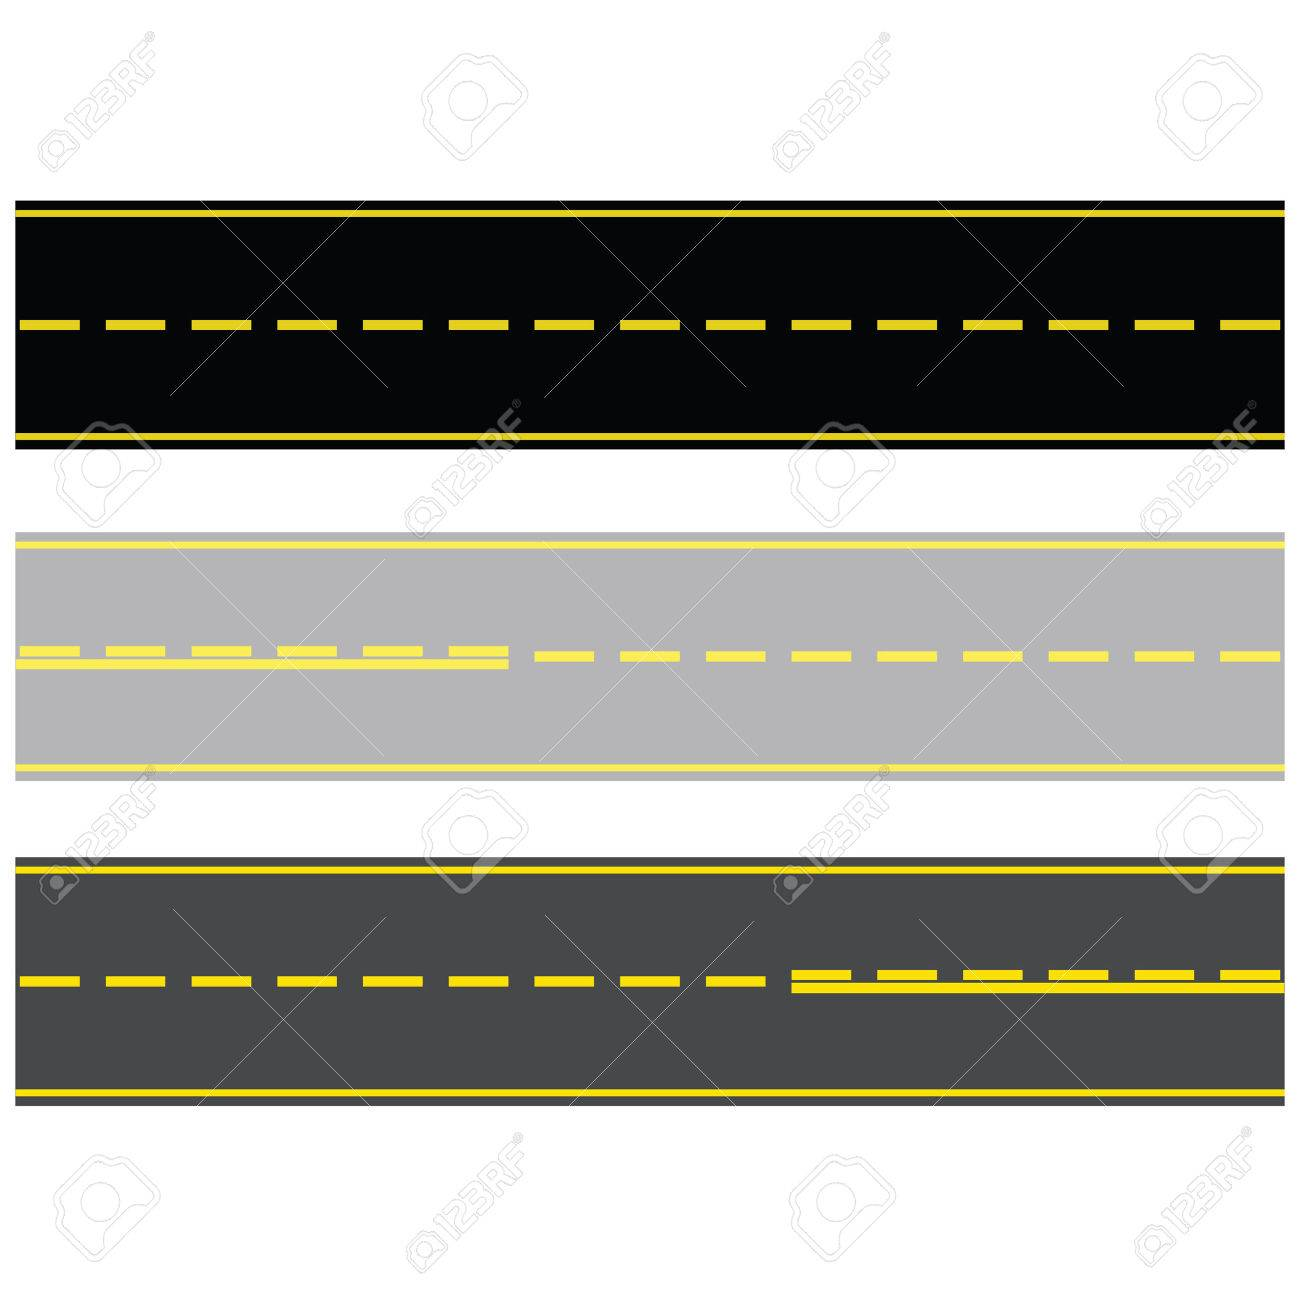 Illustration of three different types of paved roads, with asphalt and concrete - 4573171